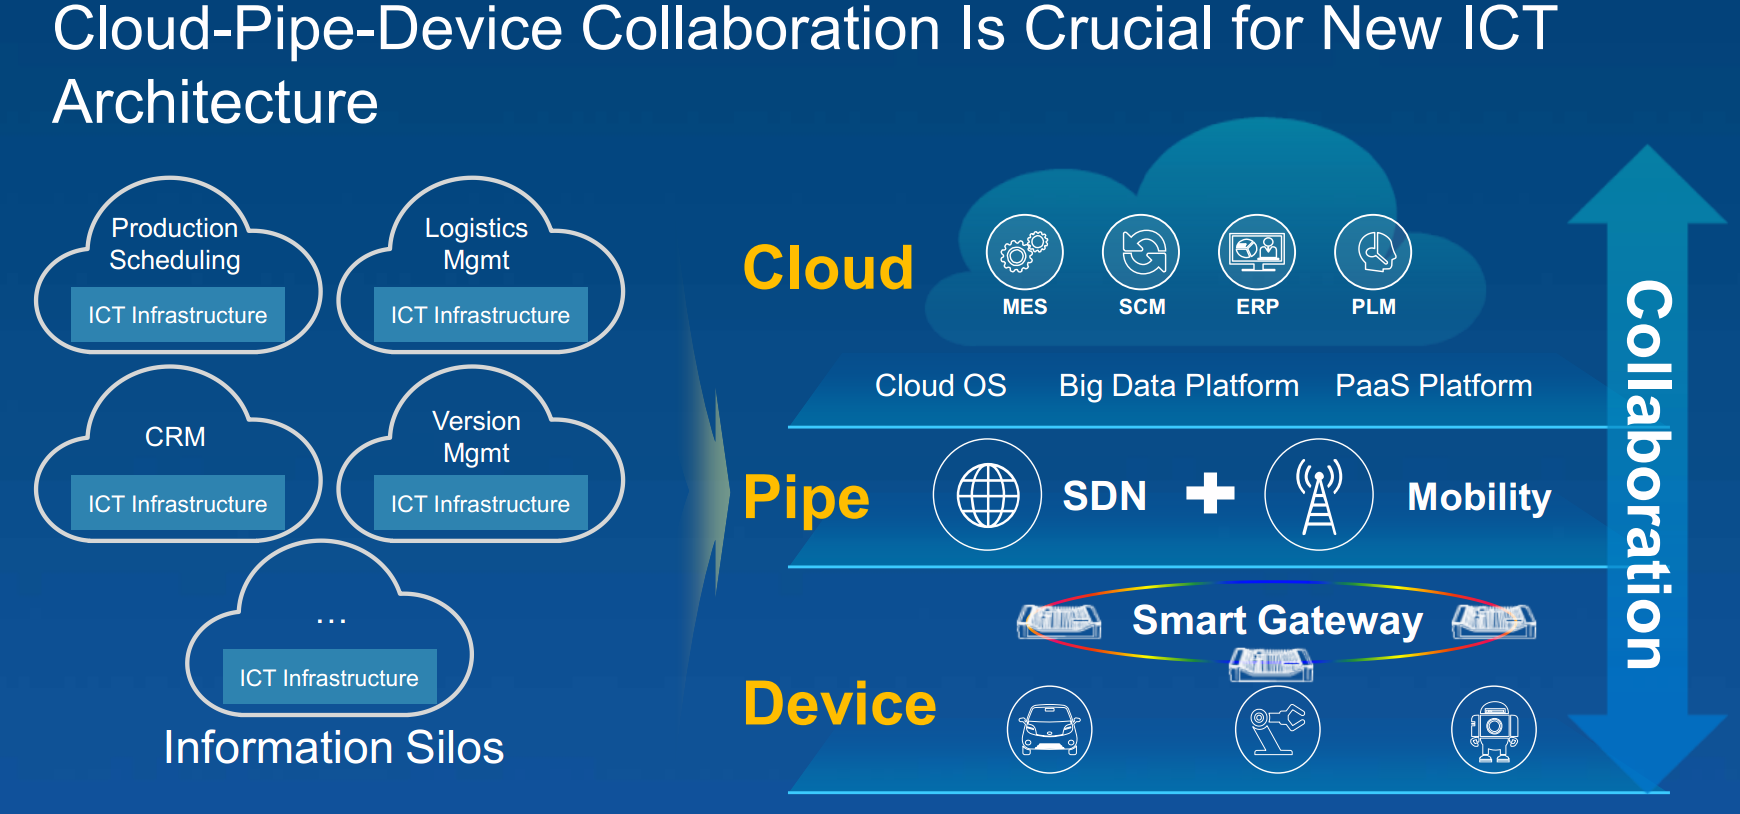 Cloud-Pipe-Device Collaboration